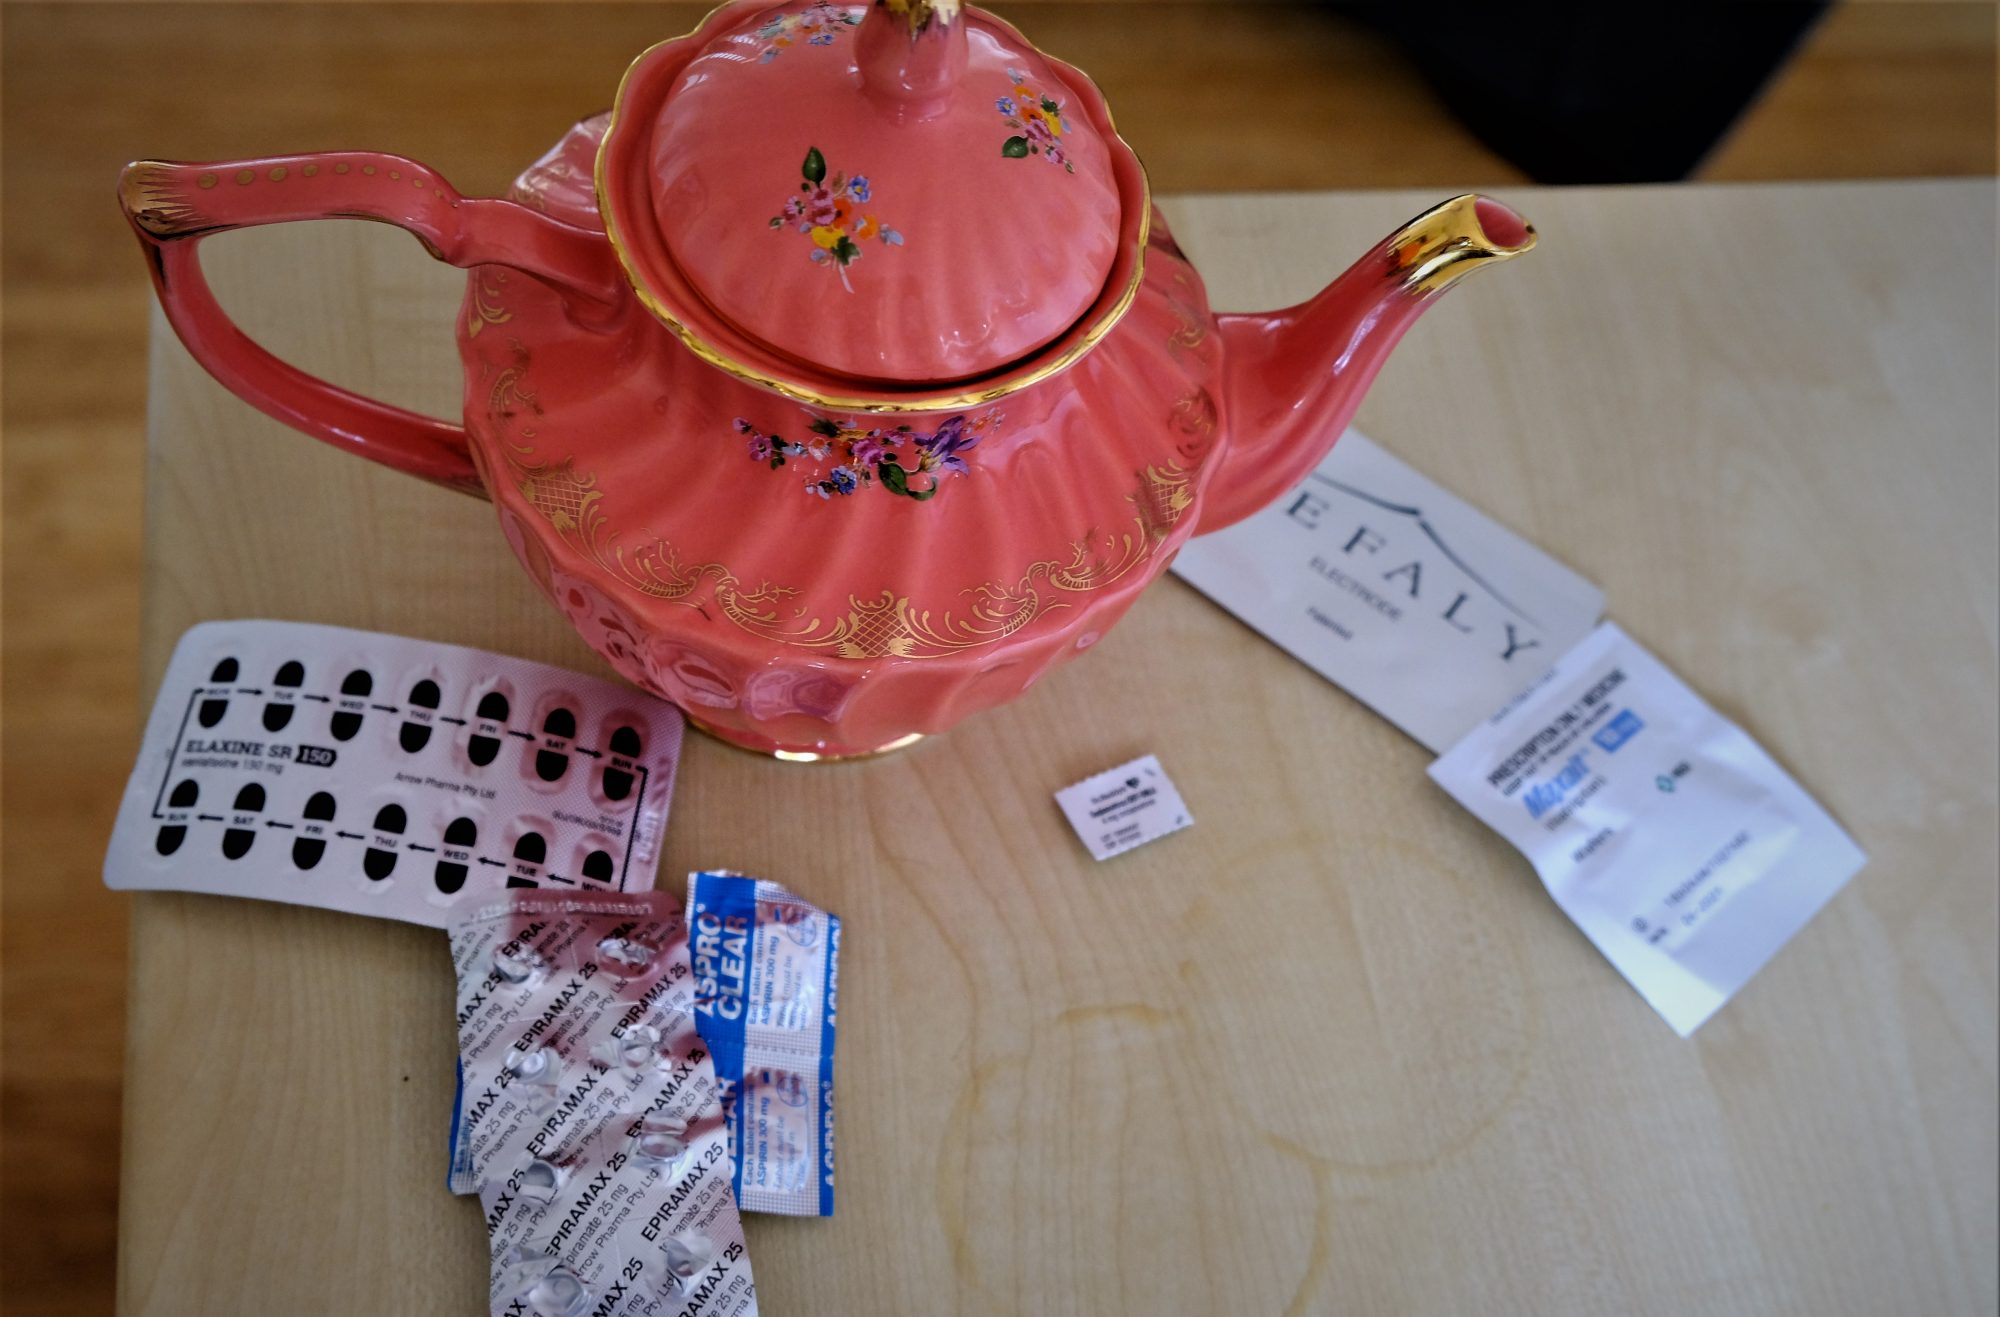 Not so simple Sick Leave – Tea stains and Migraines